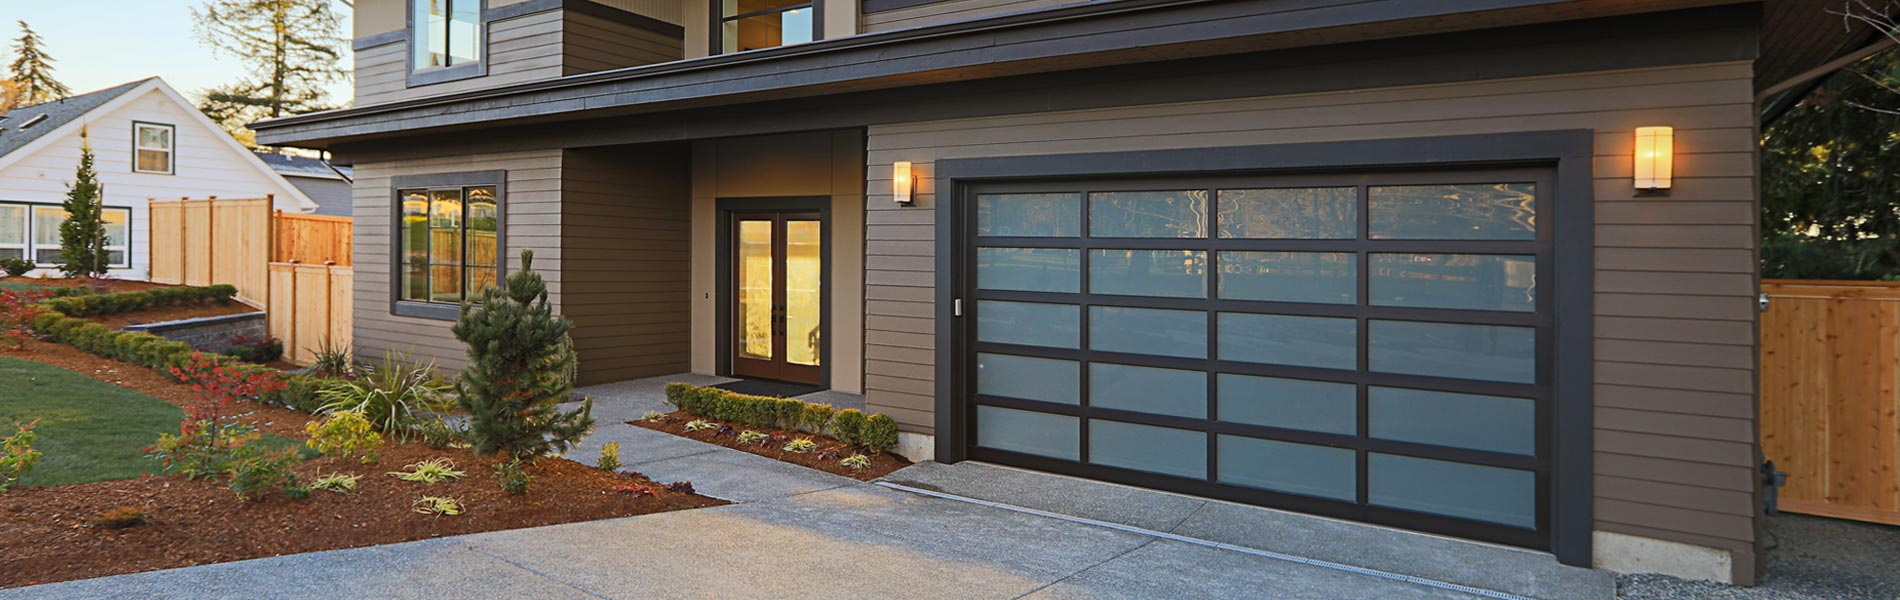 Community Garage Door Service Peoria, AZ 888-722-8148